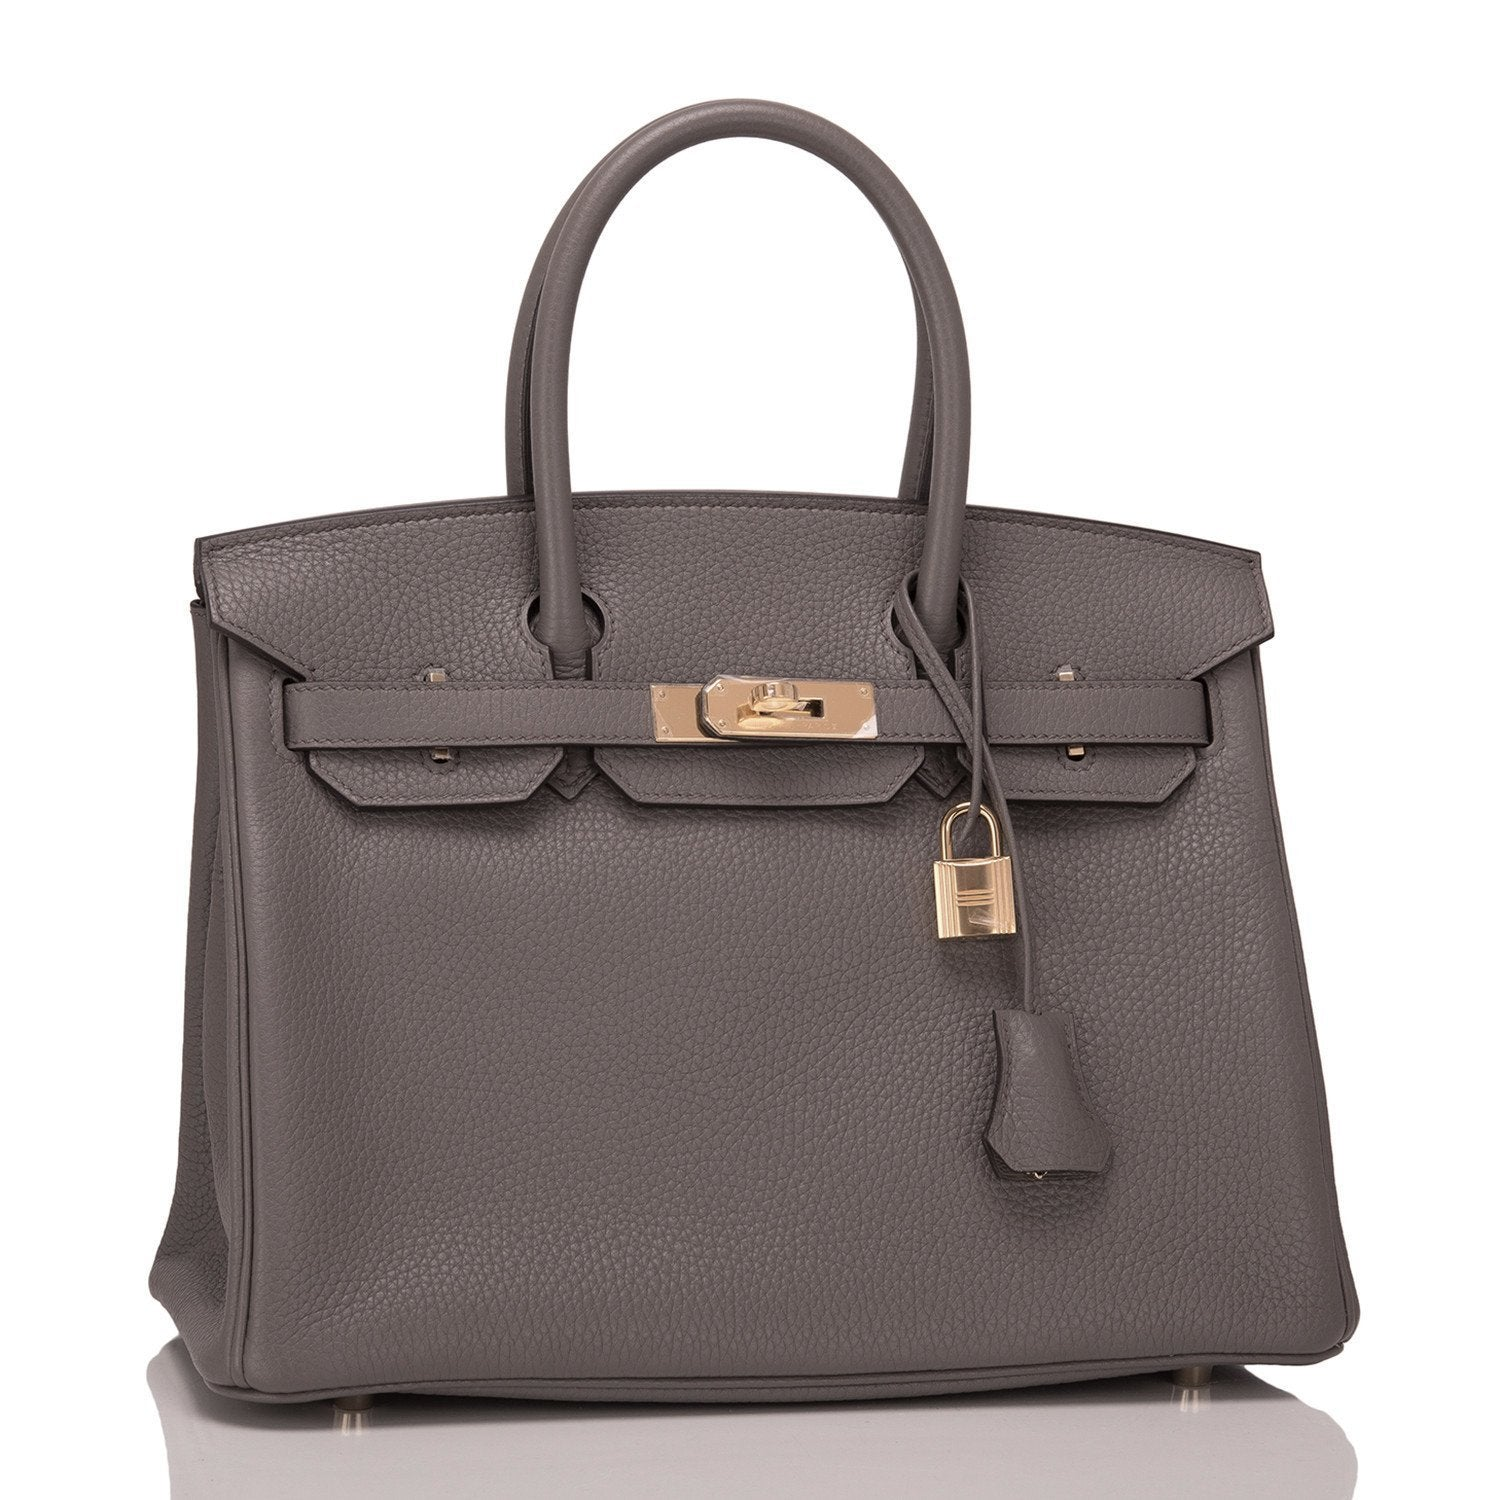 aa53b7af0fd5 Hermes Etain Clemence Birkin 30cm Gold Hardware – Madison Avenue Couture